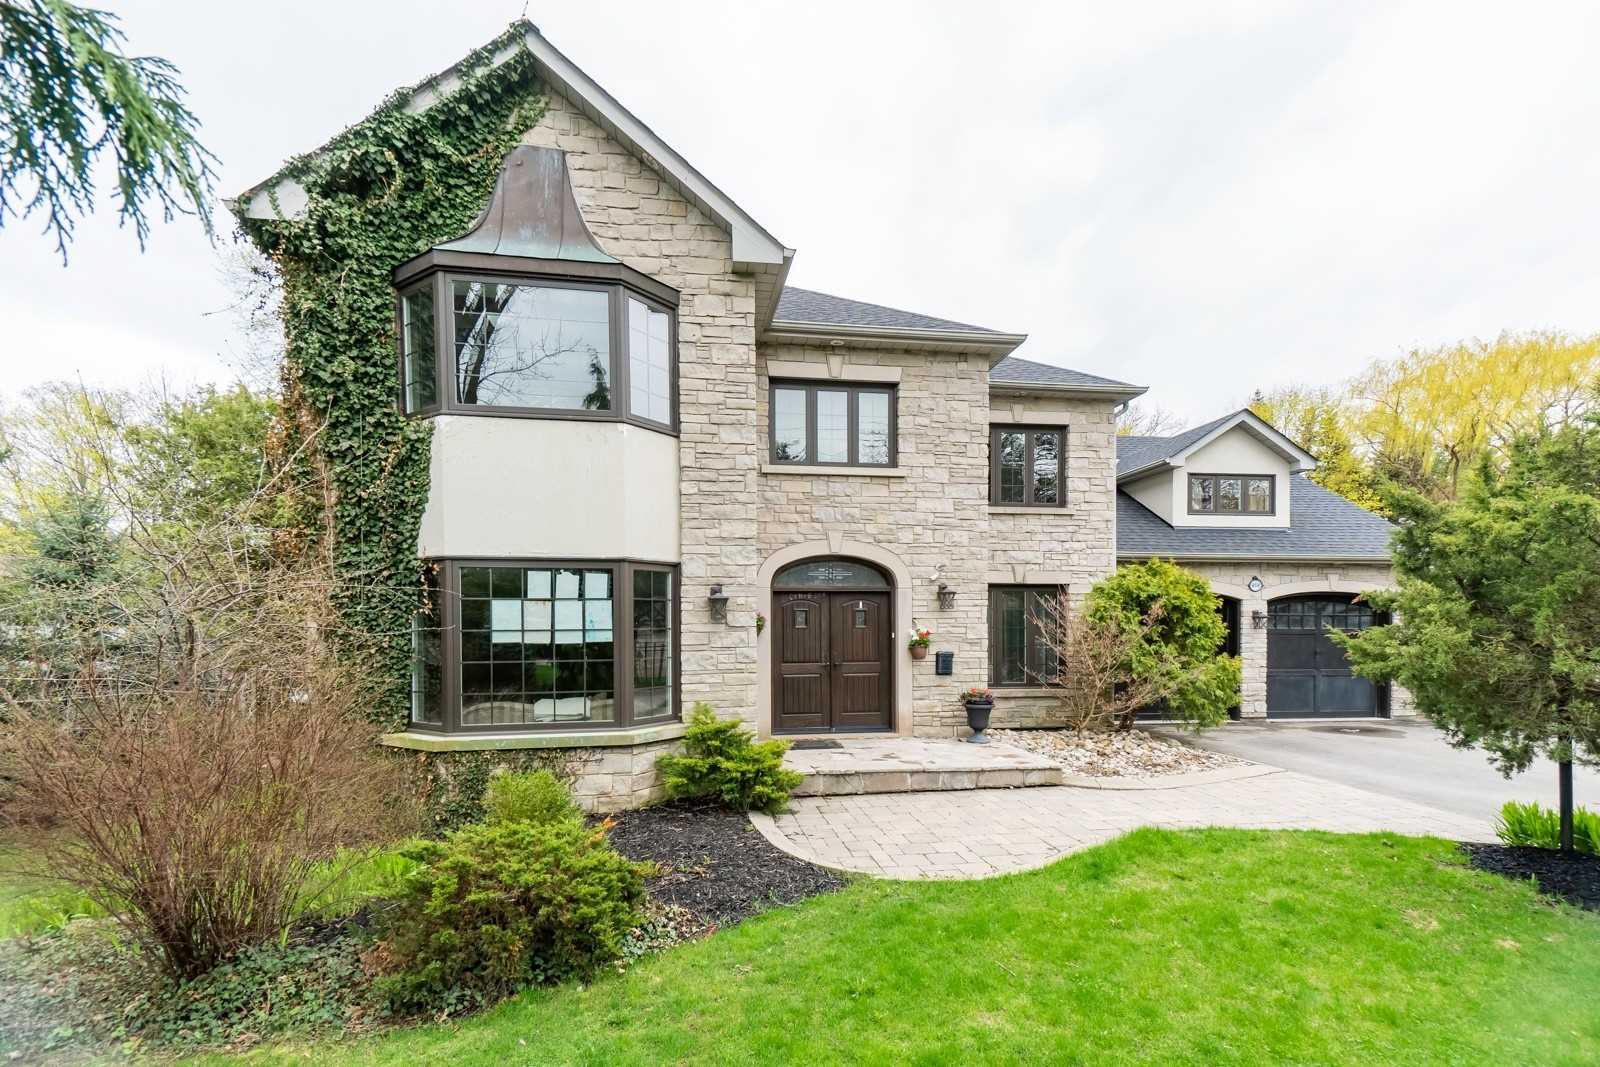 468 Meadow Wood Rd, Mississauga